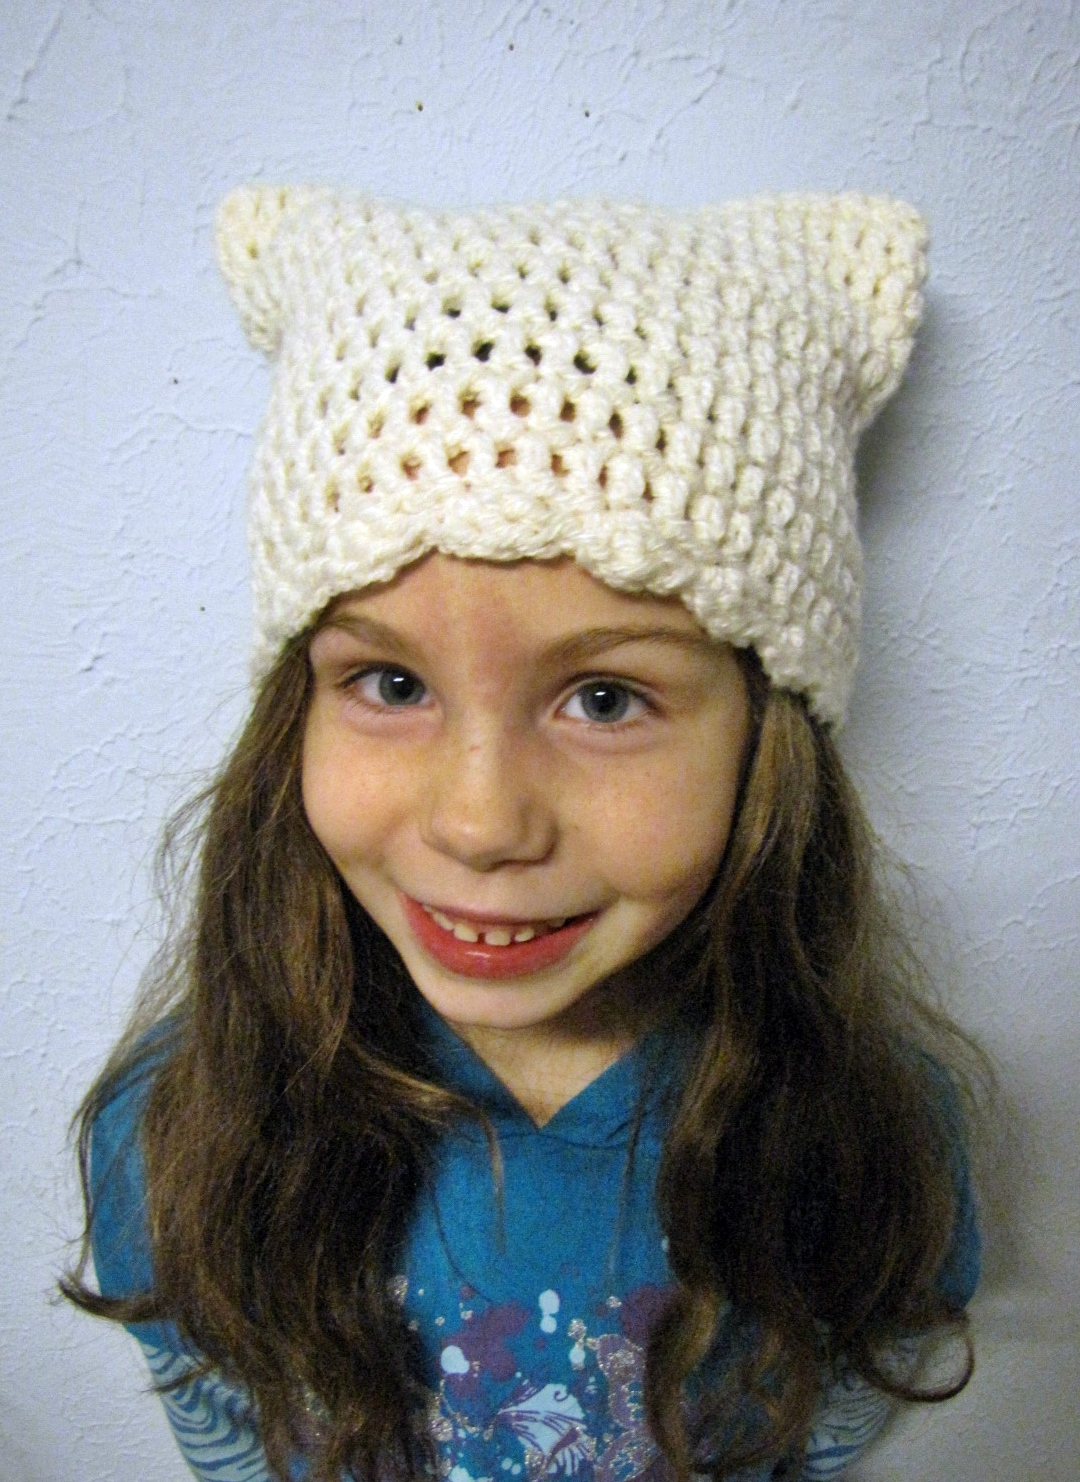 Crochet Kitty Hat Pattern : BellaCrochet: The Kitty Cap: A Free Crochet Pattern For You